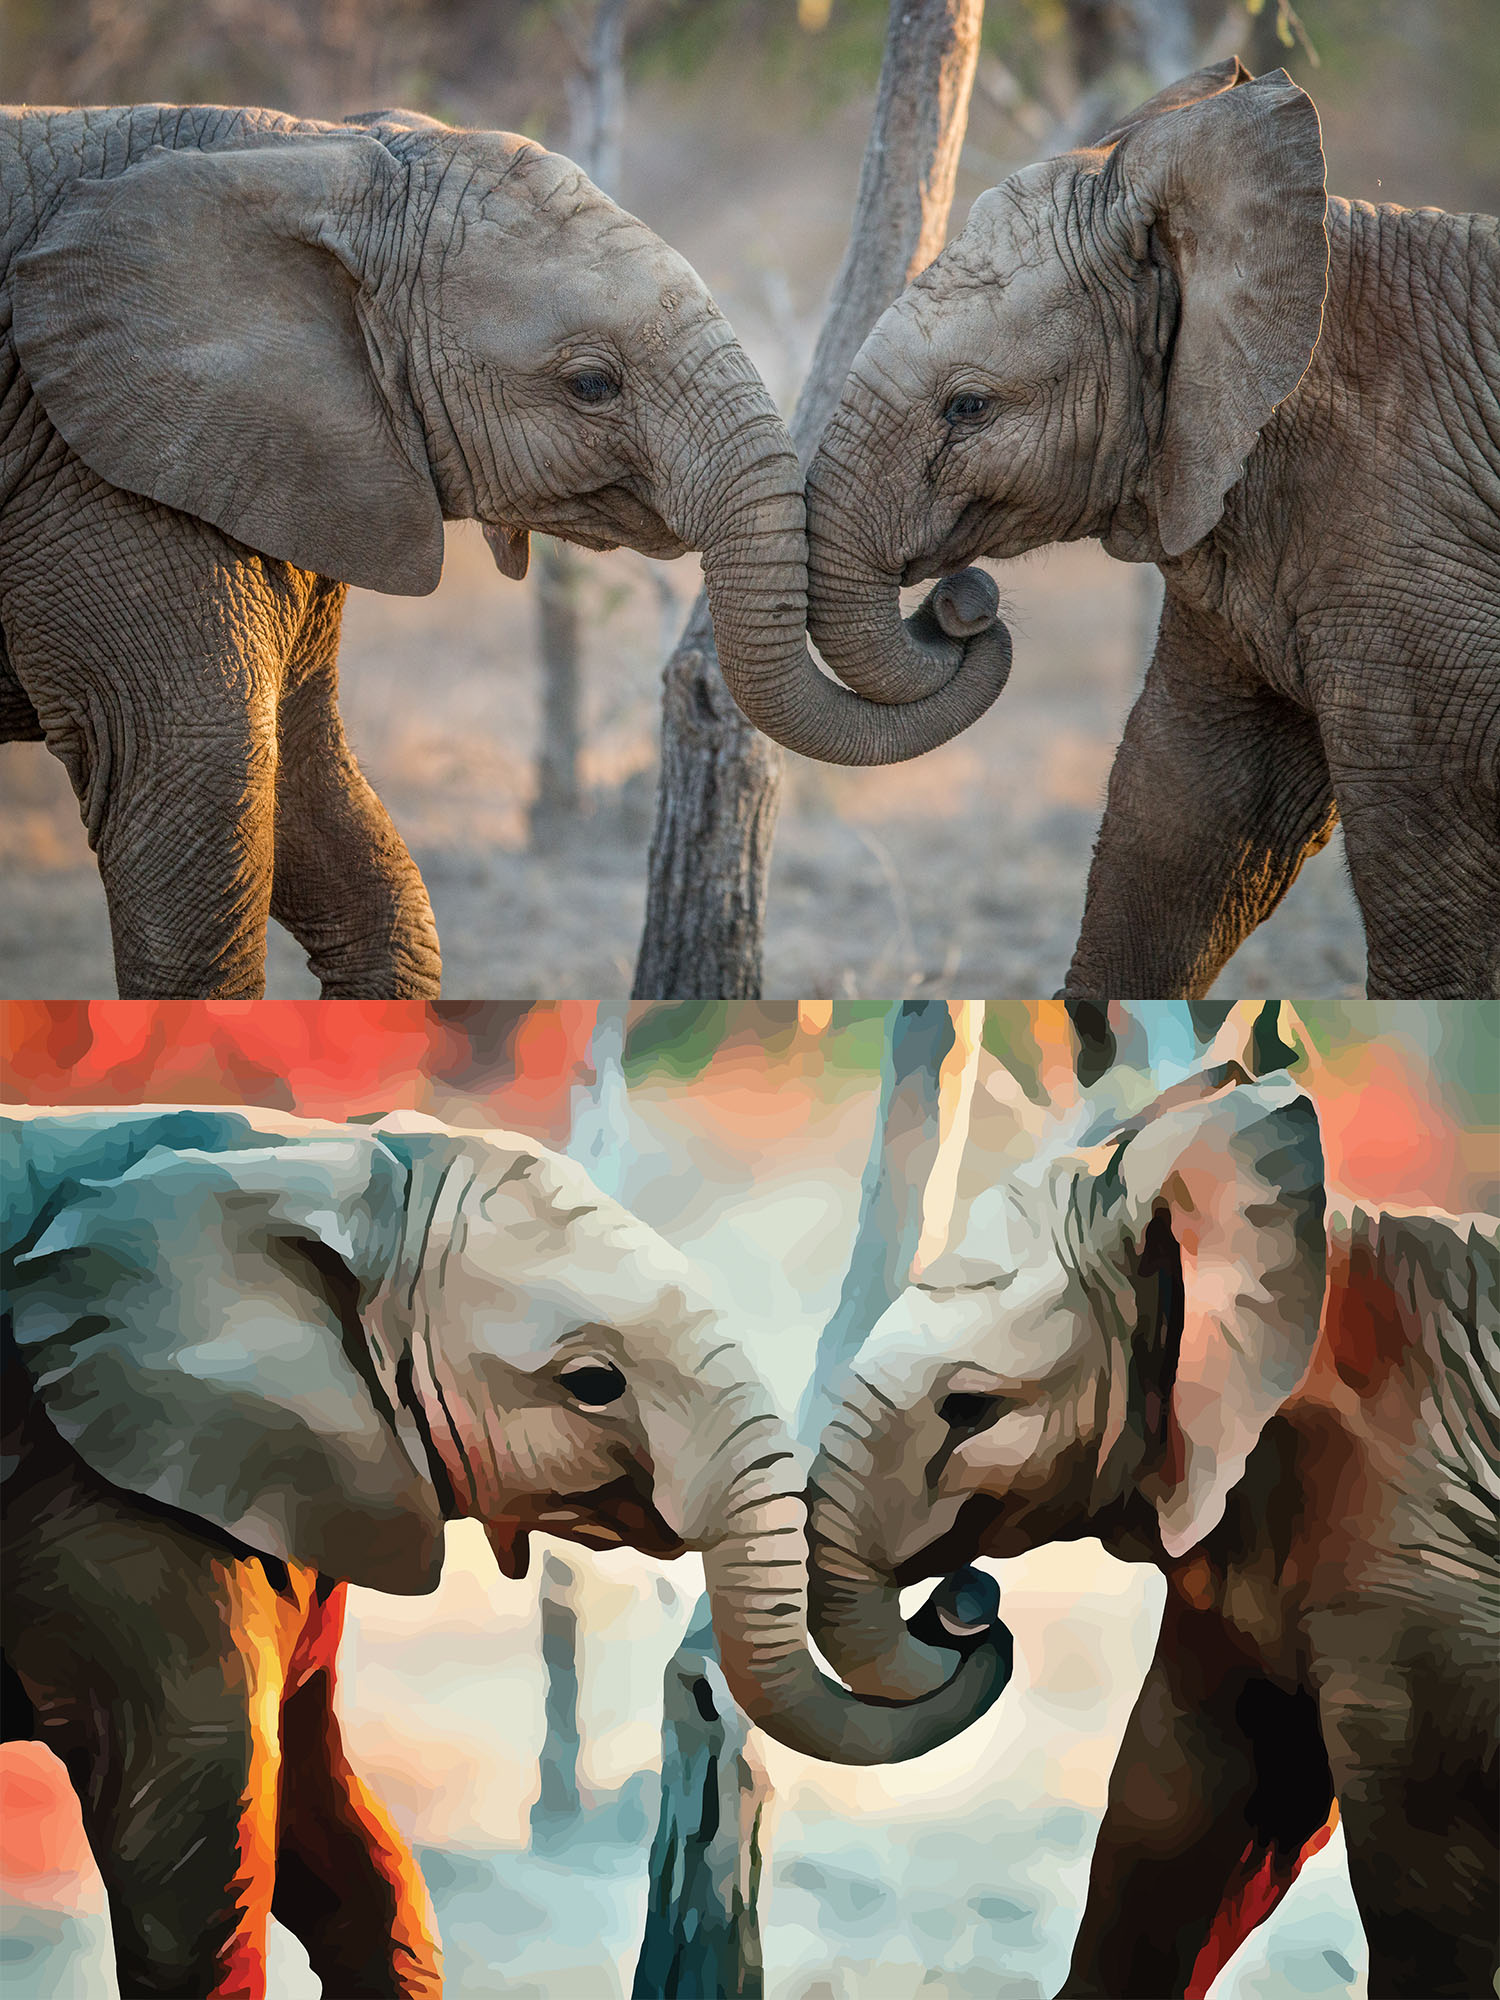 Before and after stylized image of two elephants entwining their trunks